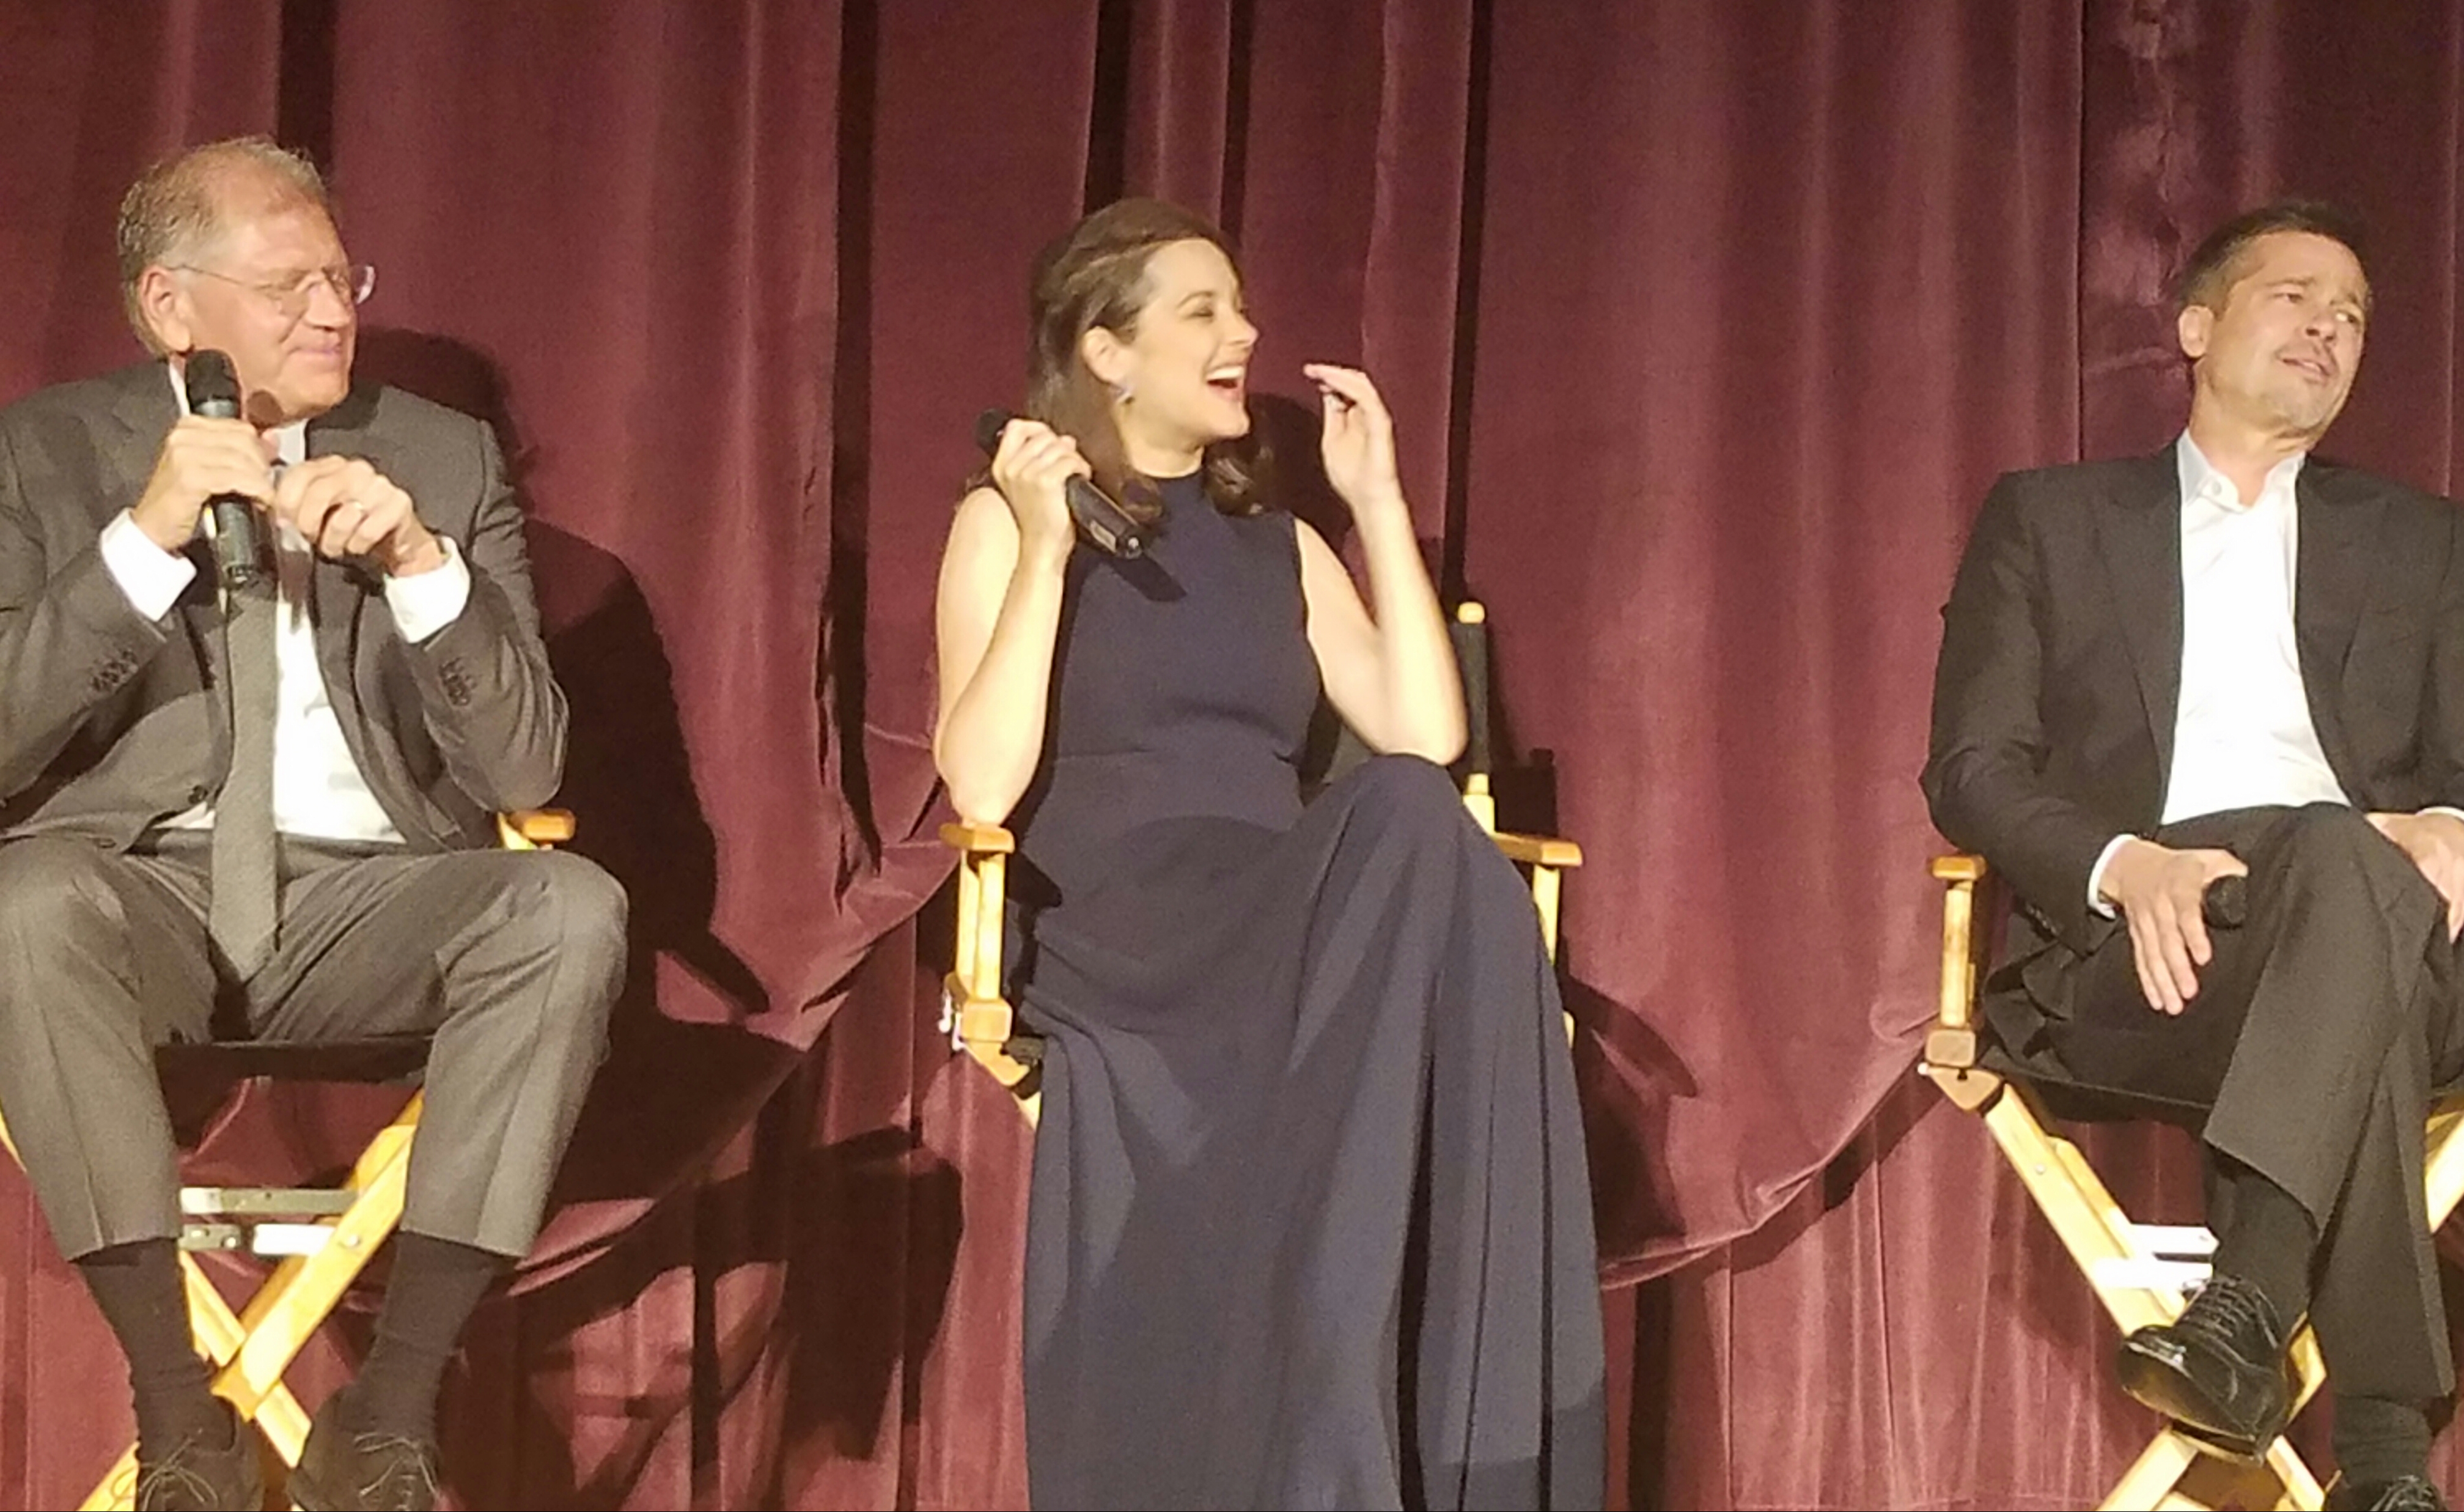 Robert Zemekis Marion Cotillard And Brad Pitt At The Premiere Of